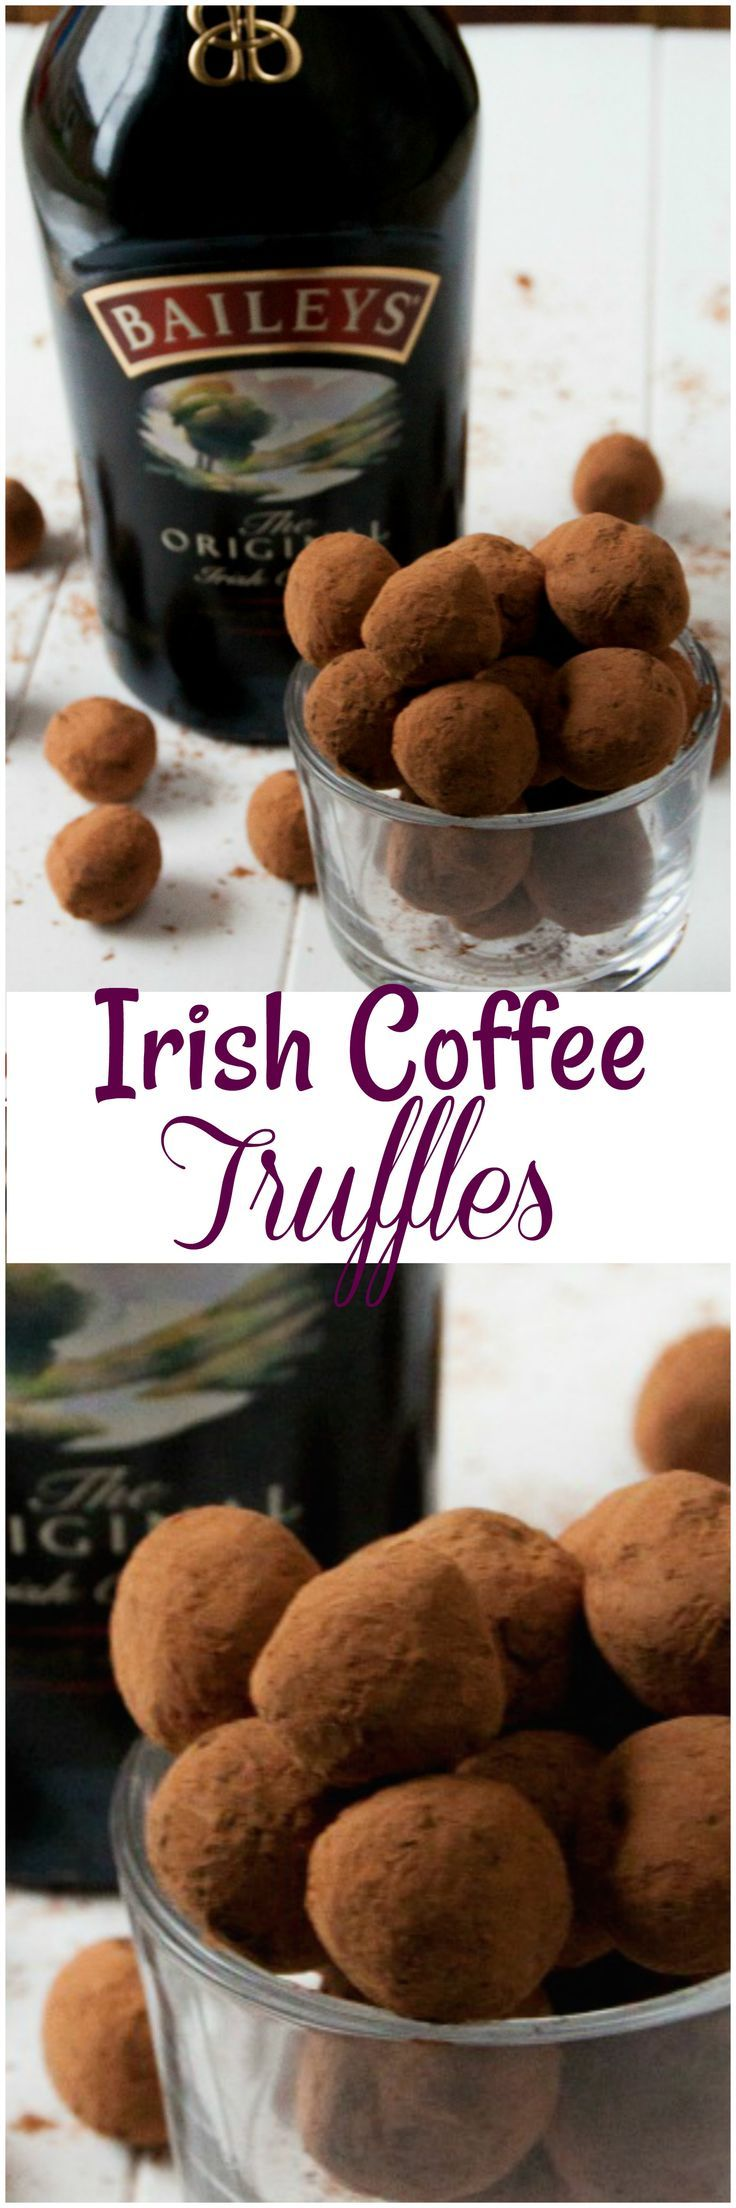 Irish Coffee Truffles. These Irish Coffee Truffles have a dark chocolate with a rich flavor from the coffee that mixes so well to give one amazing Truffle.